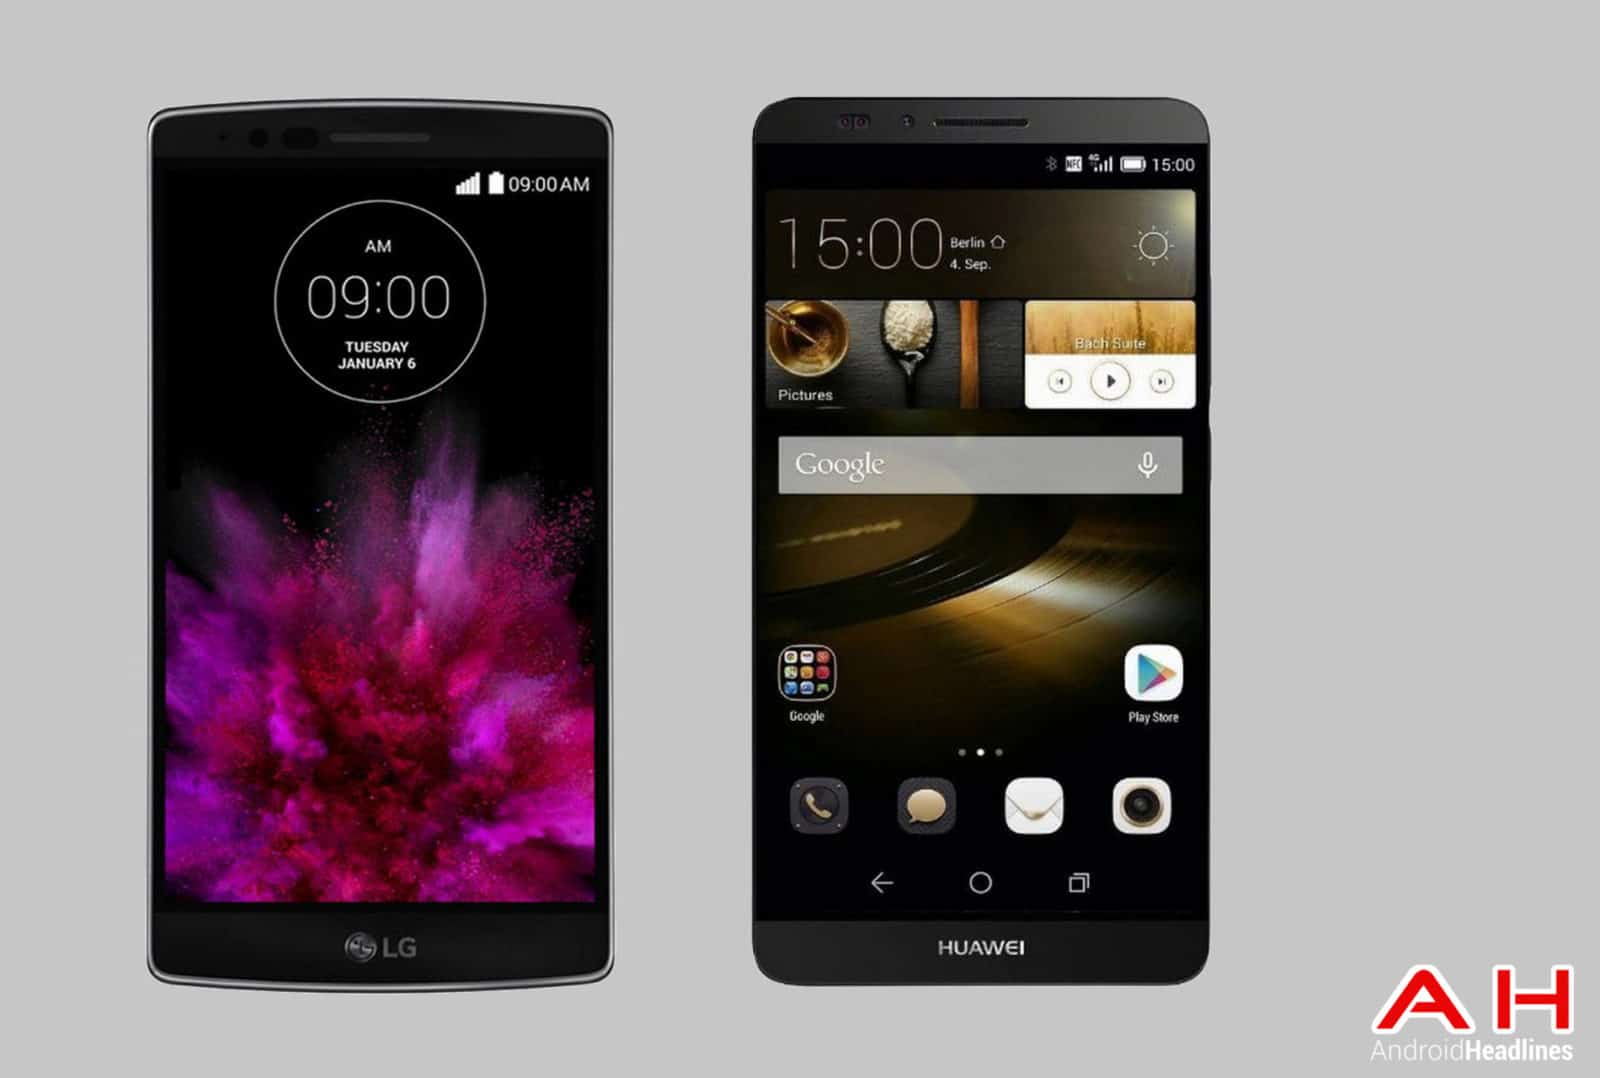 LG G Flex 2 vs Ascend Mate 7 cam AH